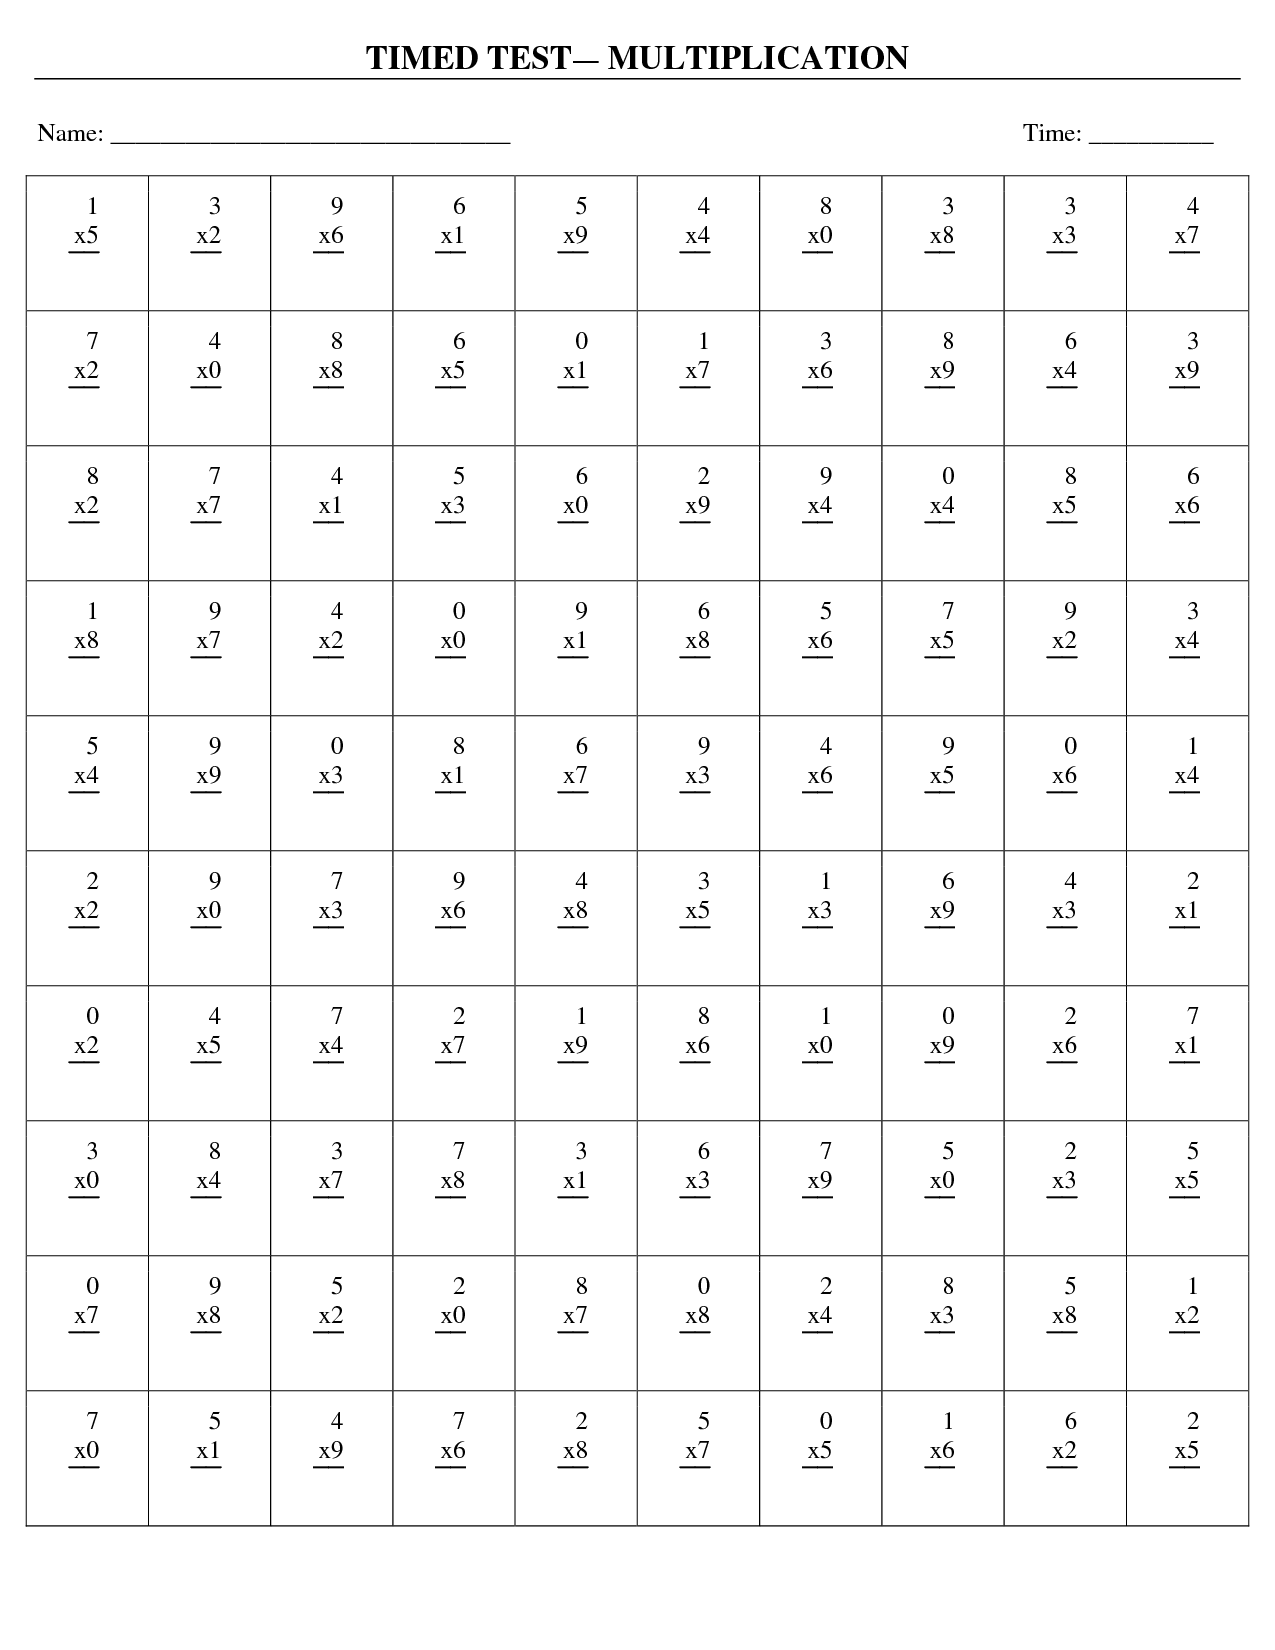 Multiplication Timed Test Worksheets | matematyka | Pinterest ...